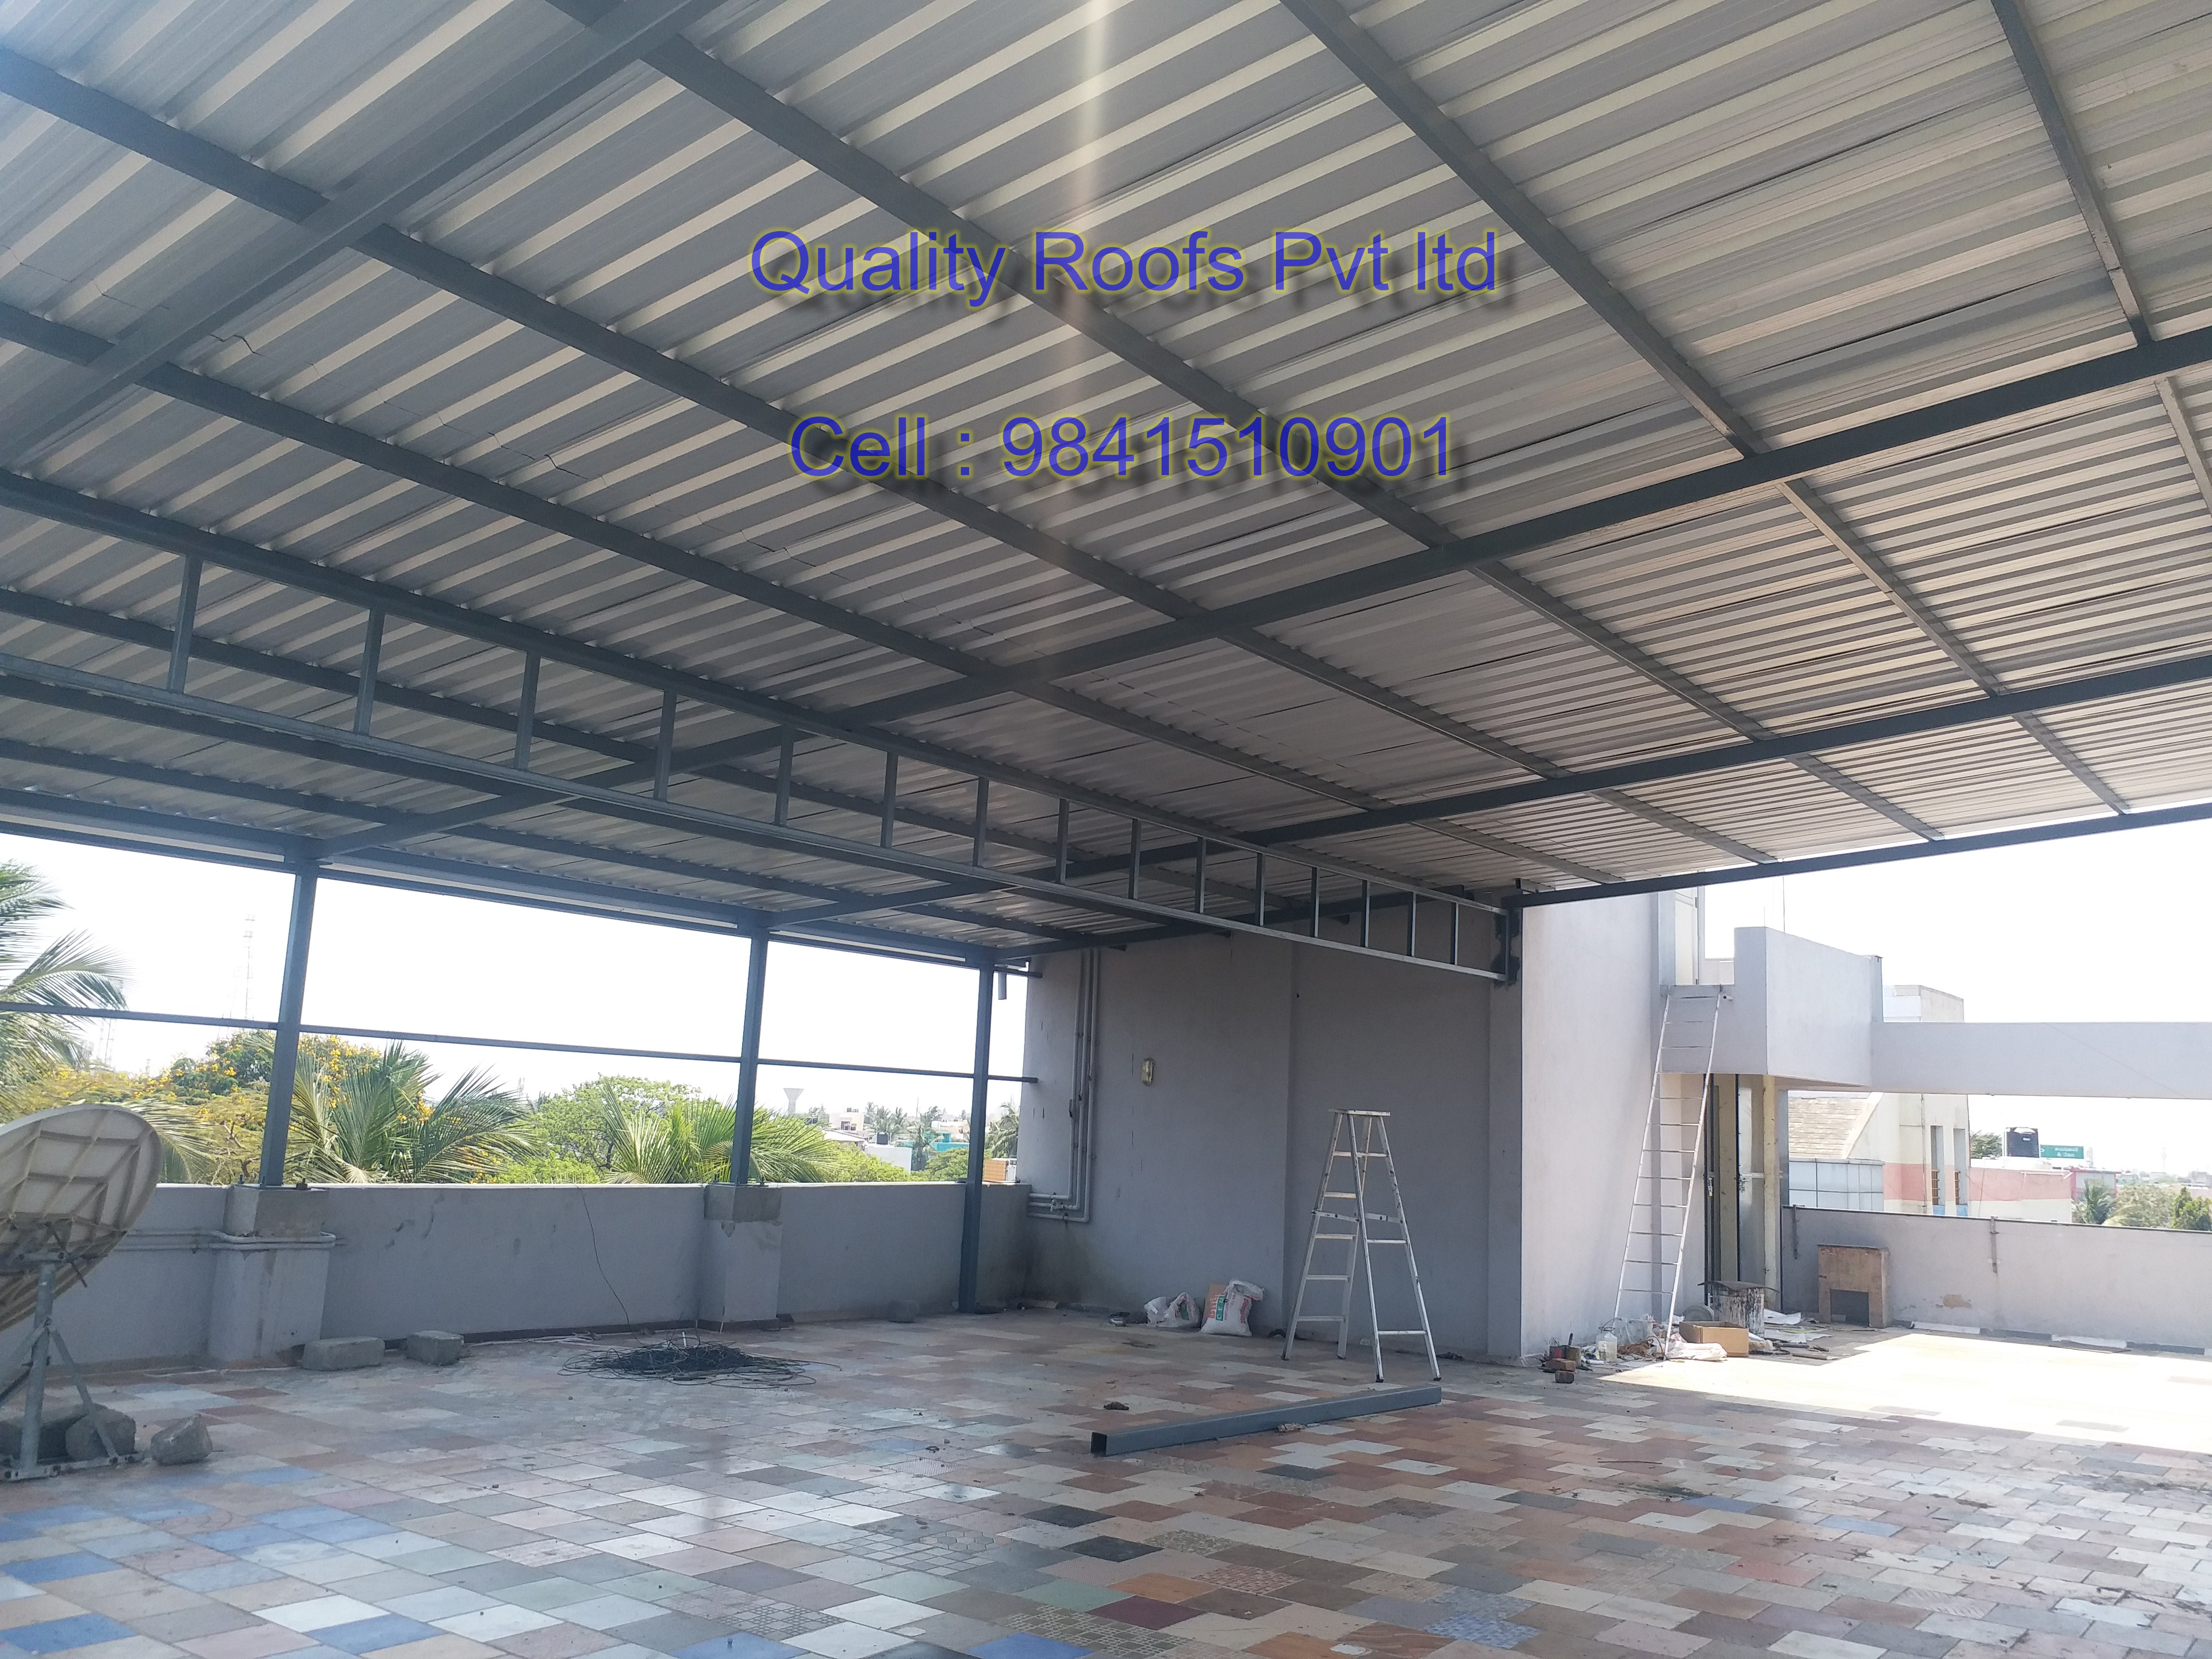 Quality Roofs Pvt Ltd, Terrace Roofing Contractors In Chennai,Roofing Construction In Chennai,Terrace Roofing Construction In Chennai,Best Terrace Roofing Service In Chennai,Best Roofing Fabricators In Chennai